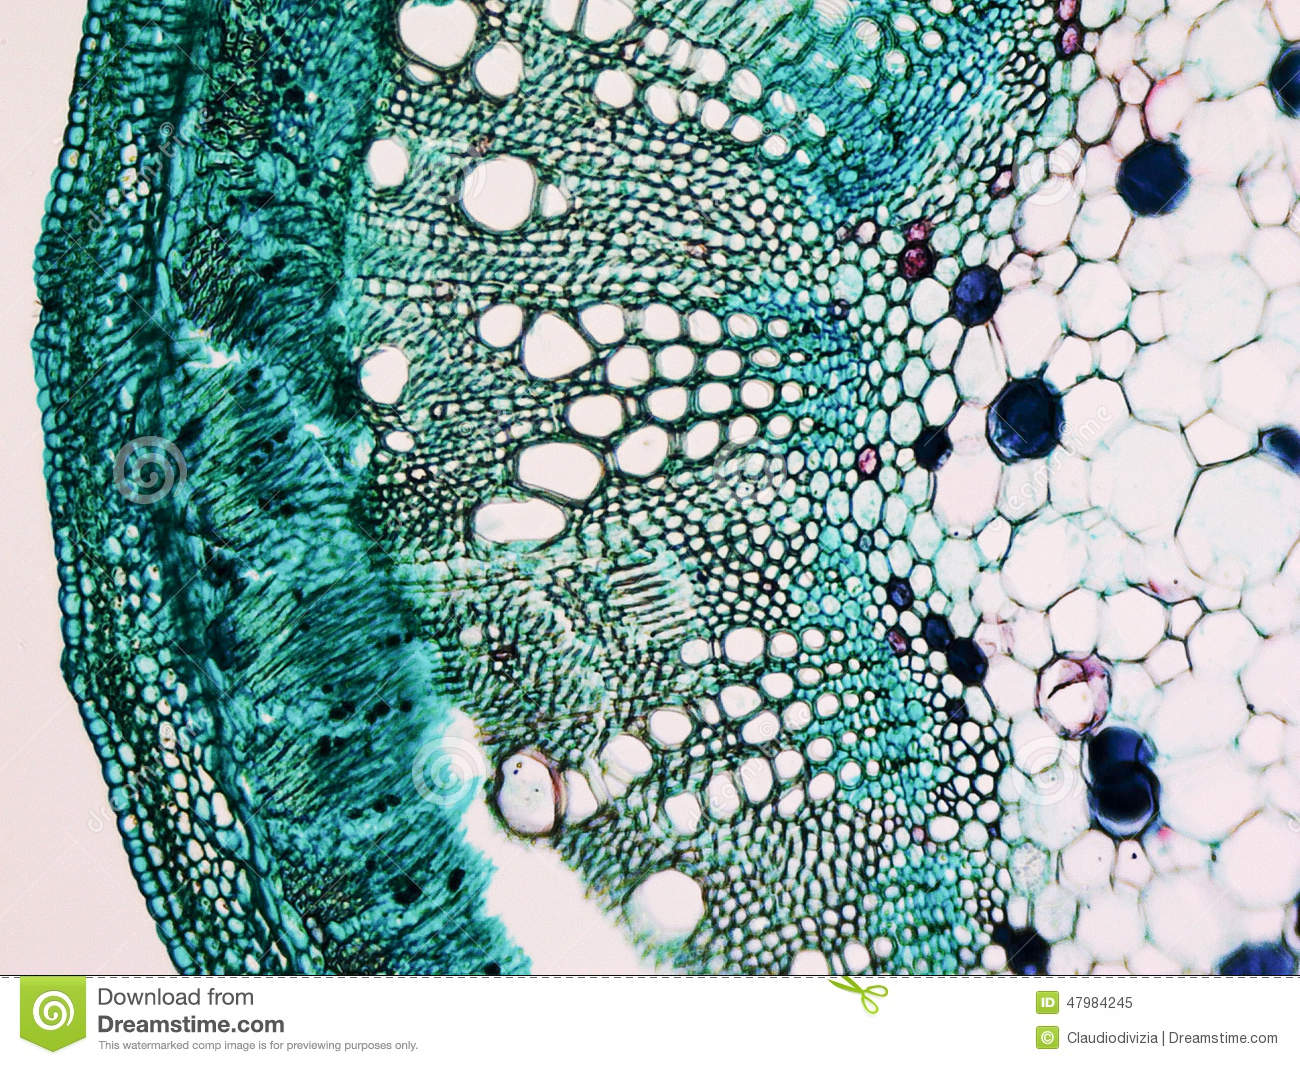 Cotton stem micrograph